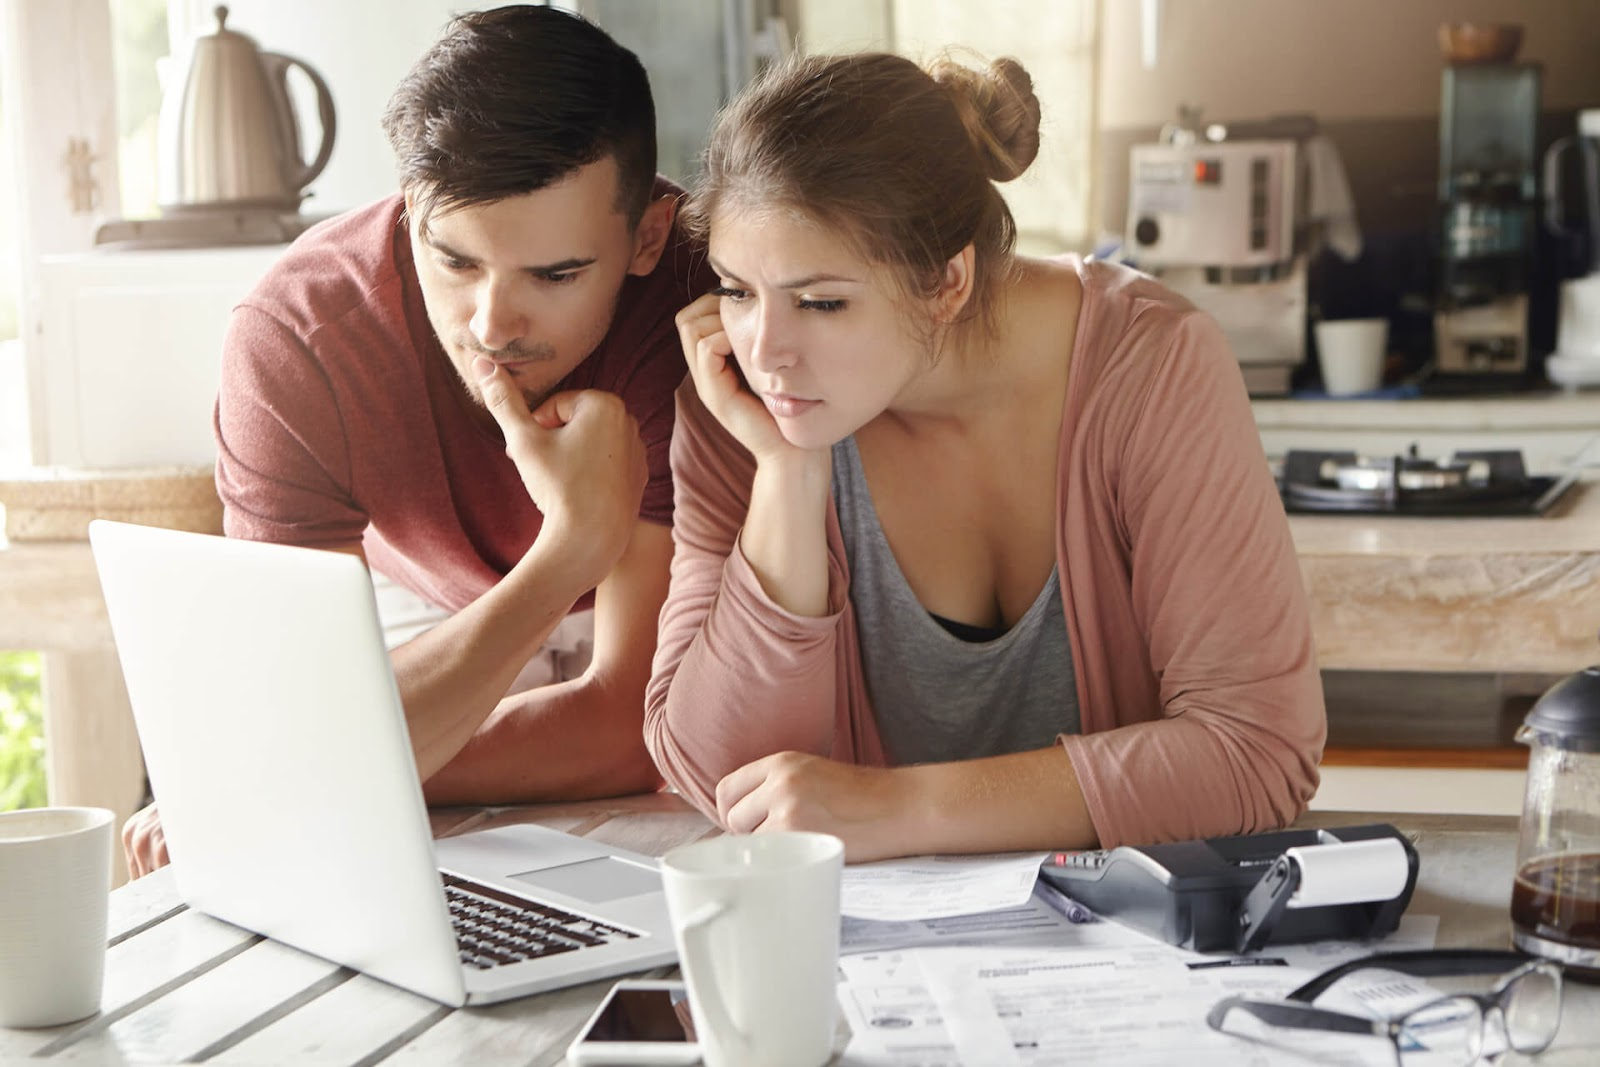 Man and woman looking over their finances together